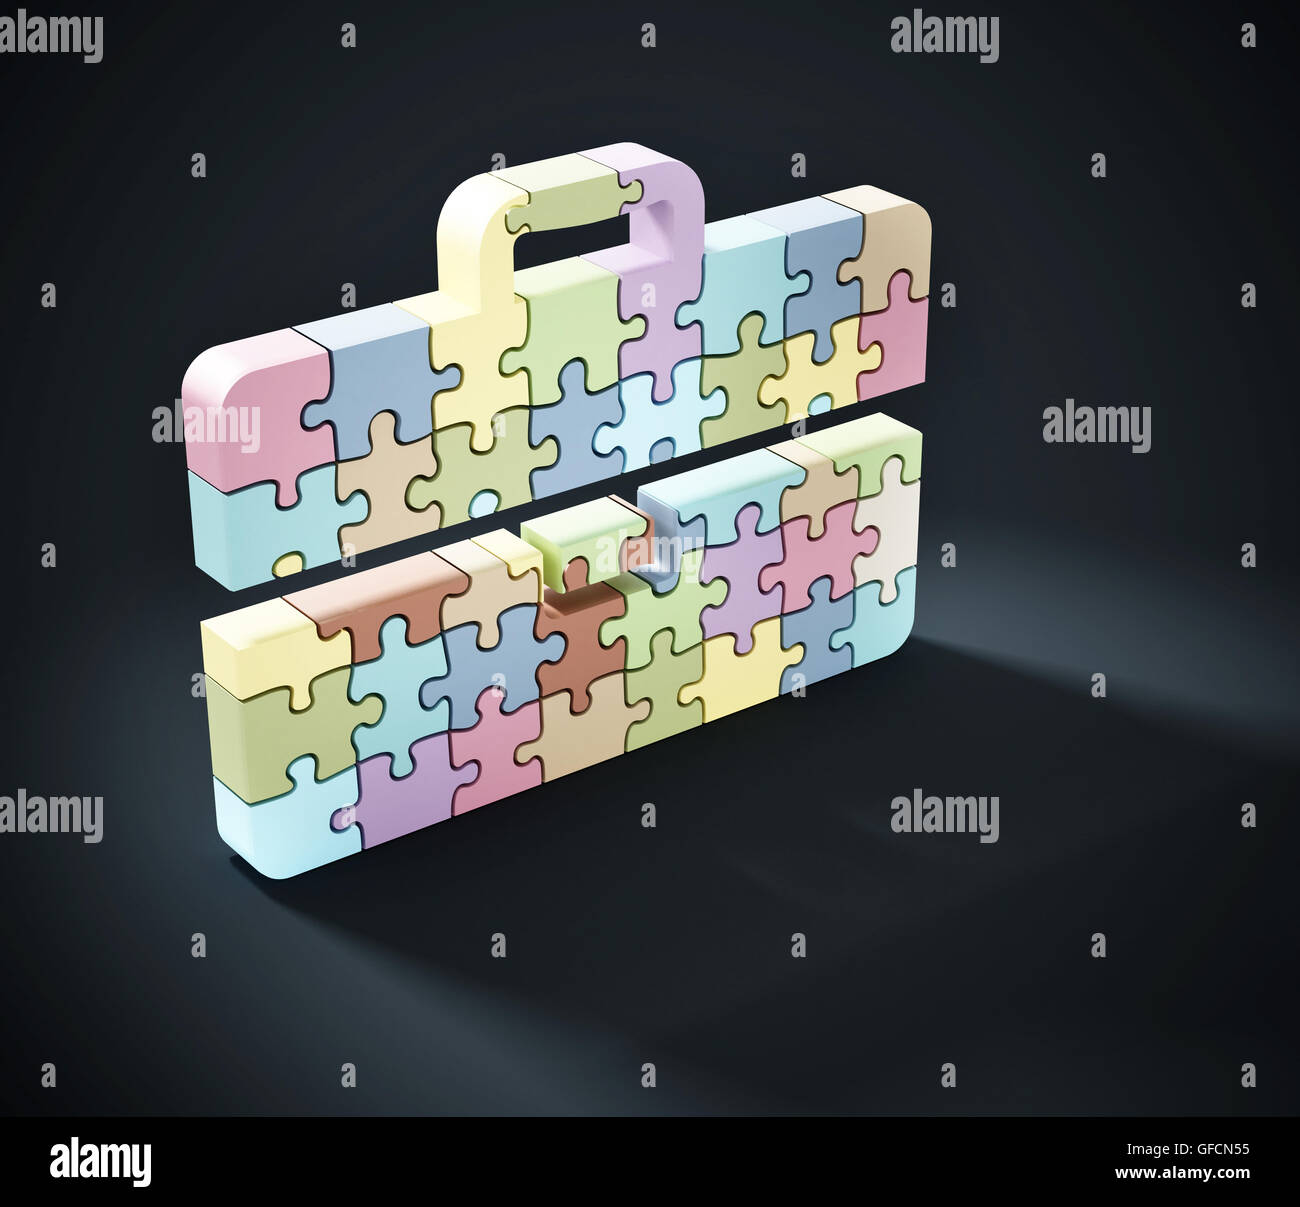 Multi colored puzzle pieces forming briefcase icon. 3D illustration. - Stock Image